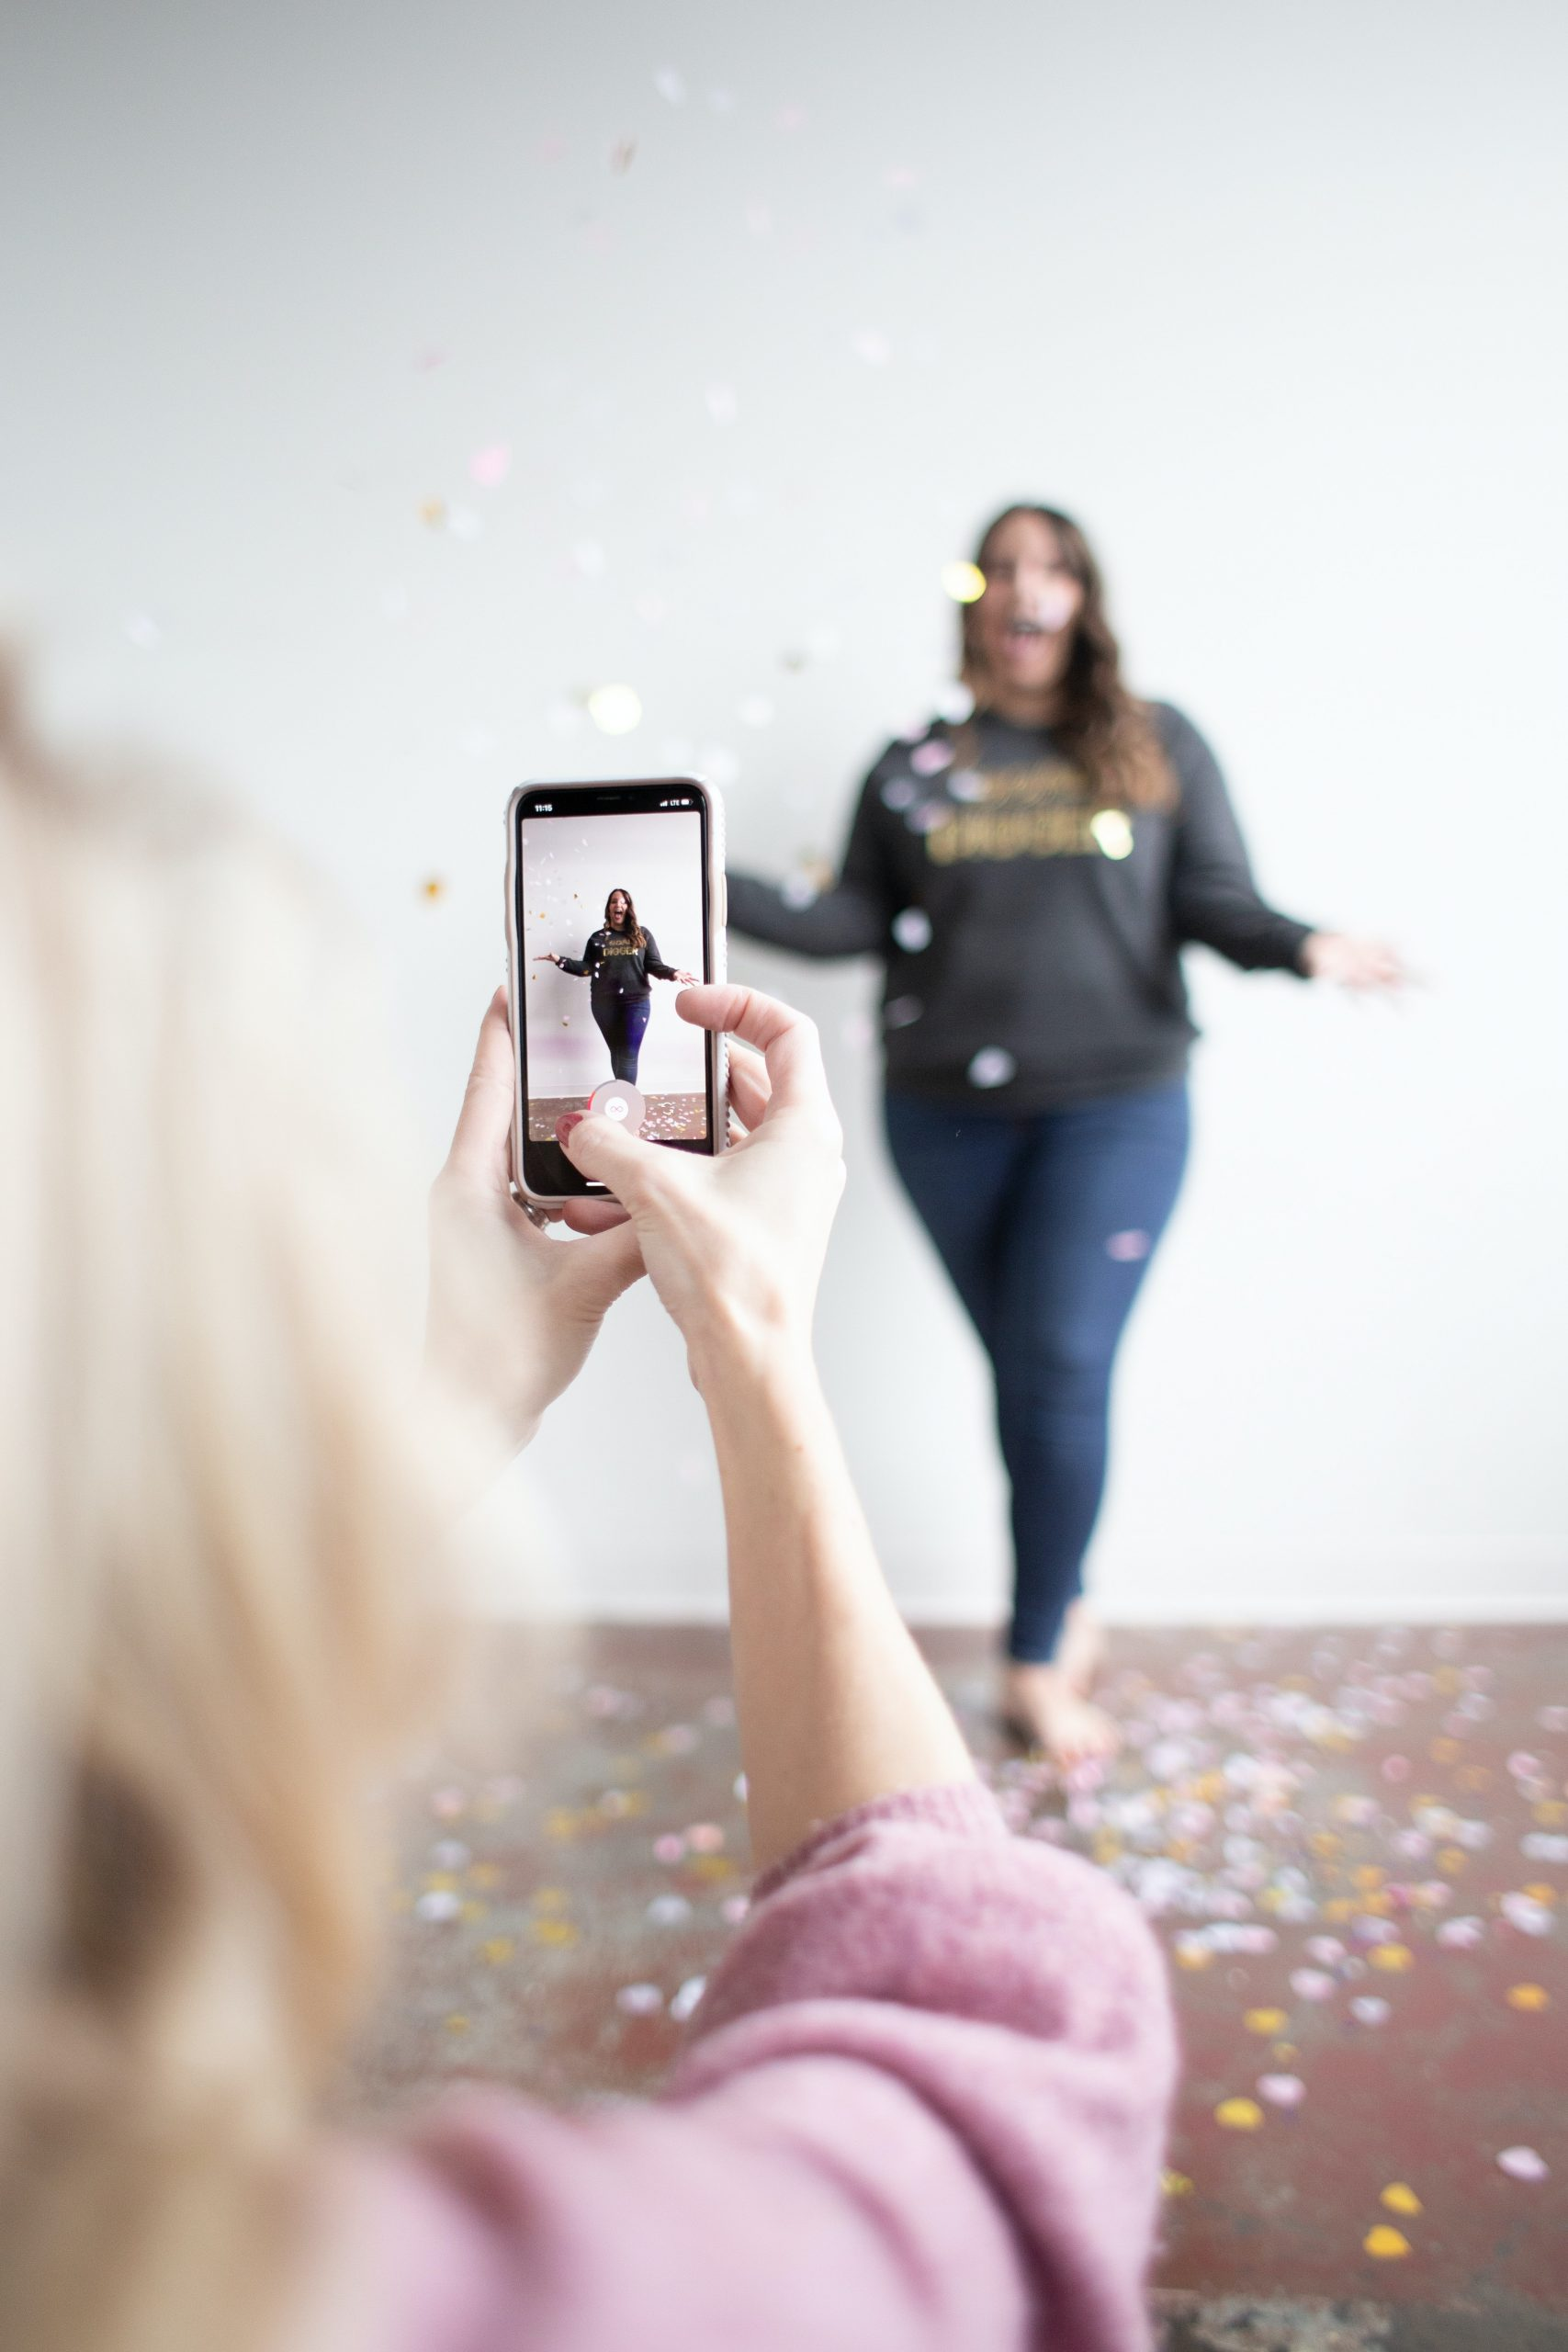 How Brands Can Use TikTok In 2020: A Quick Guide